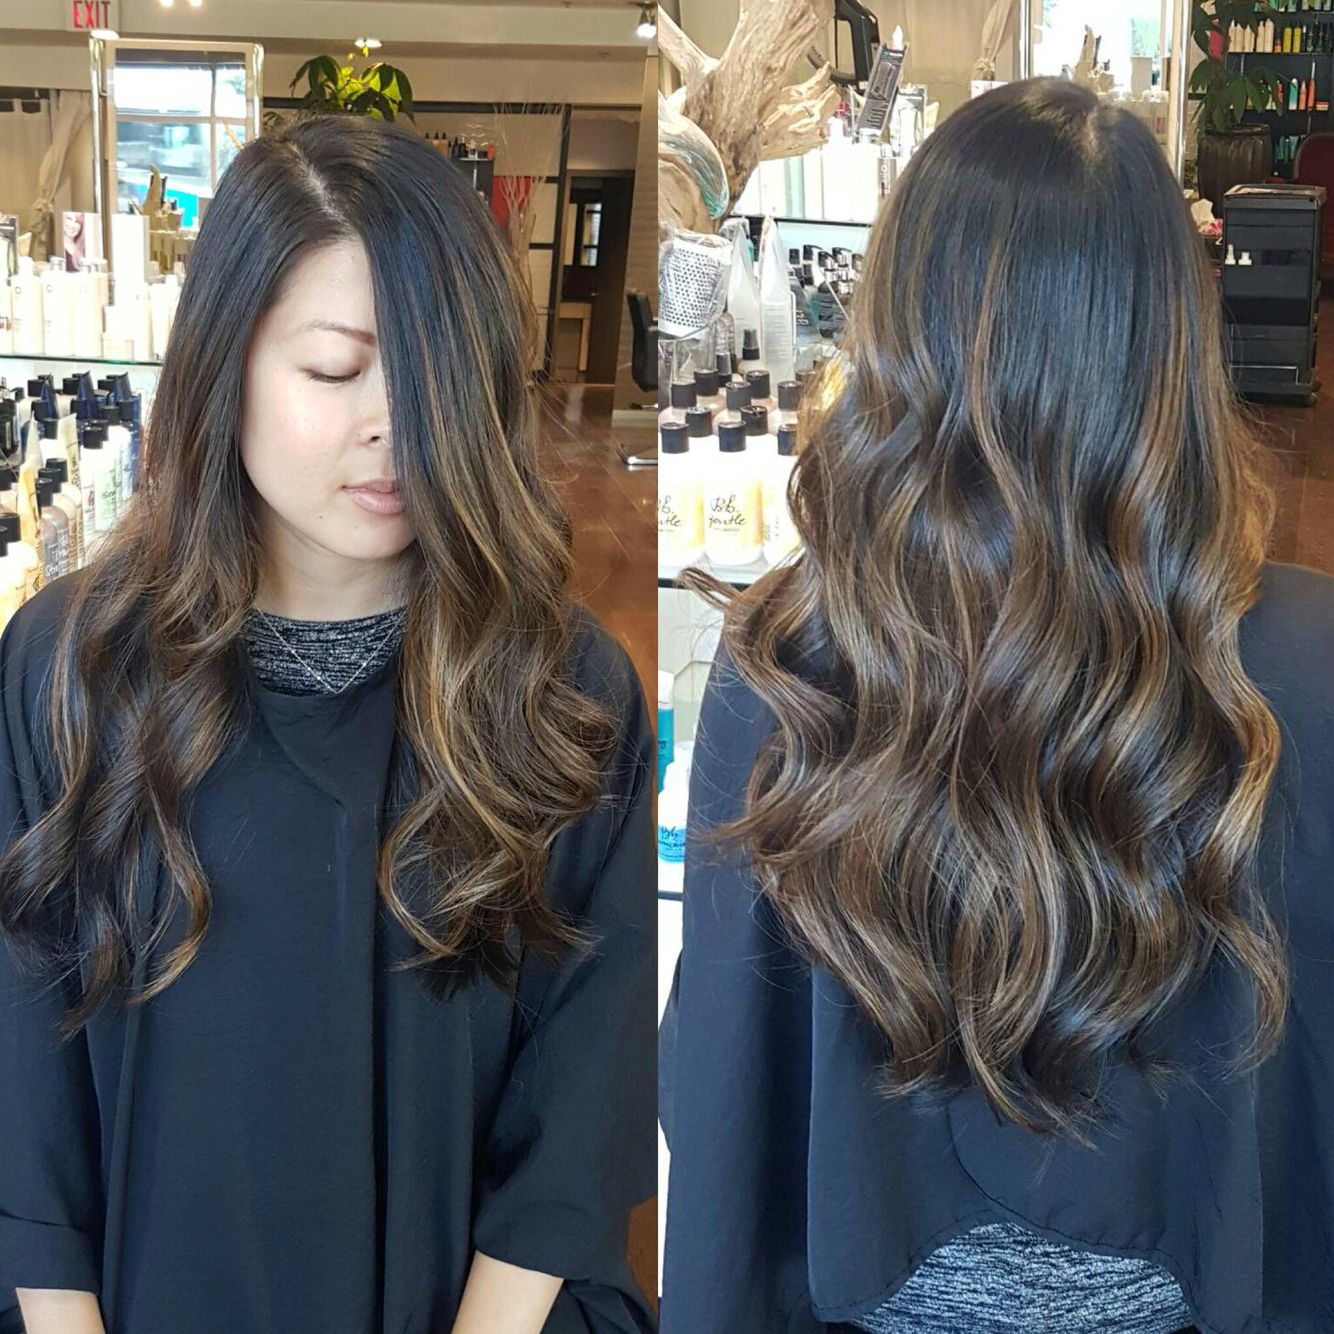 Asian Balayage Done Without Bleach To Keep Hair Looking Healthy Ash Brown